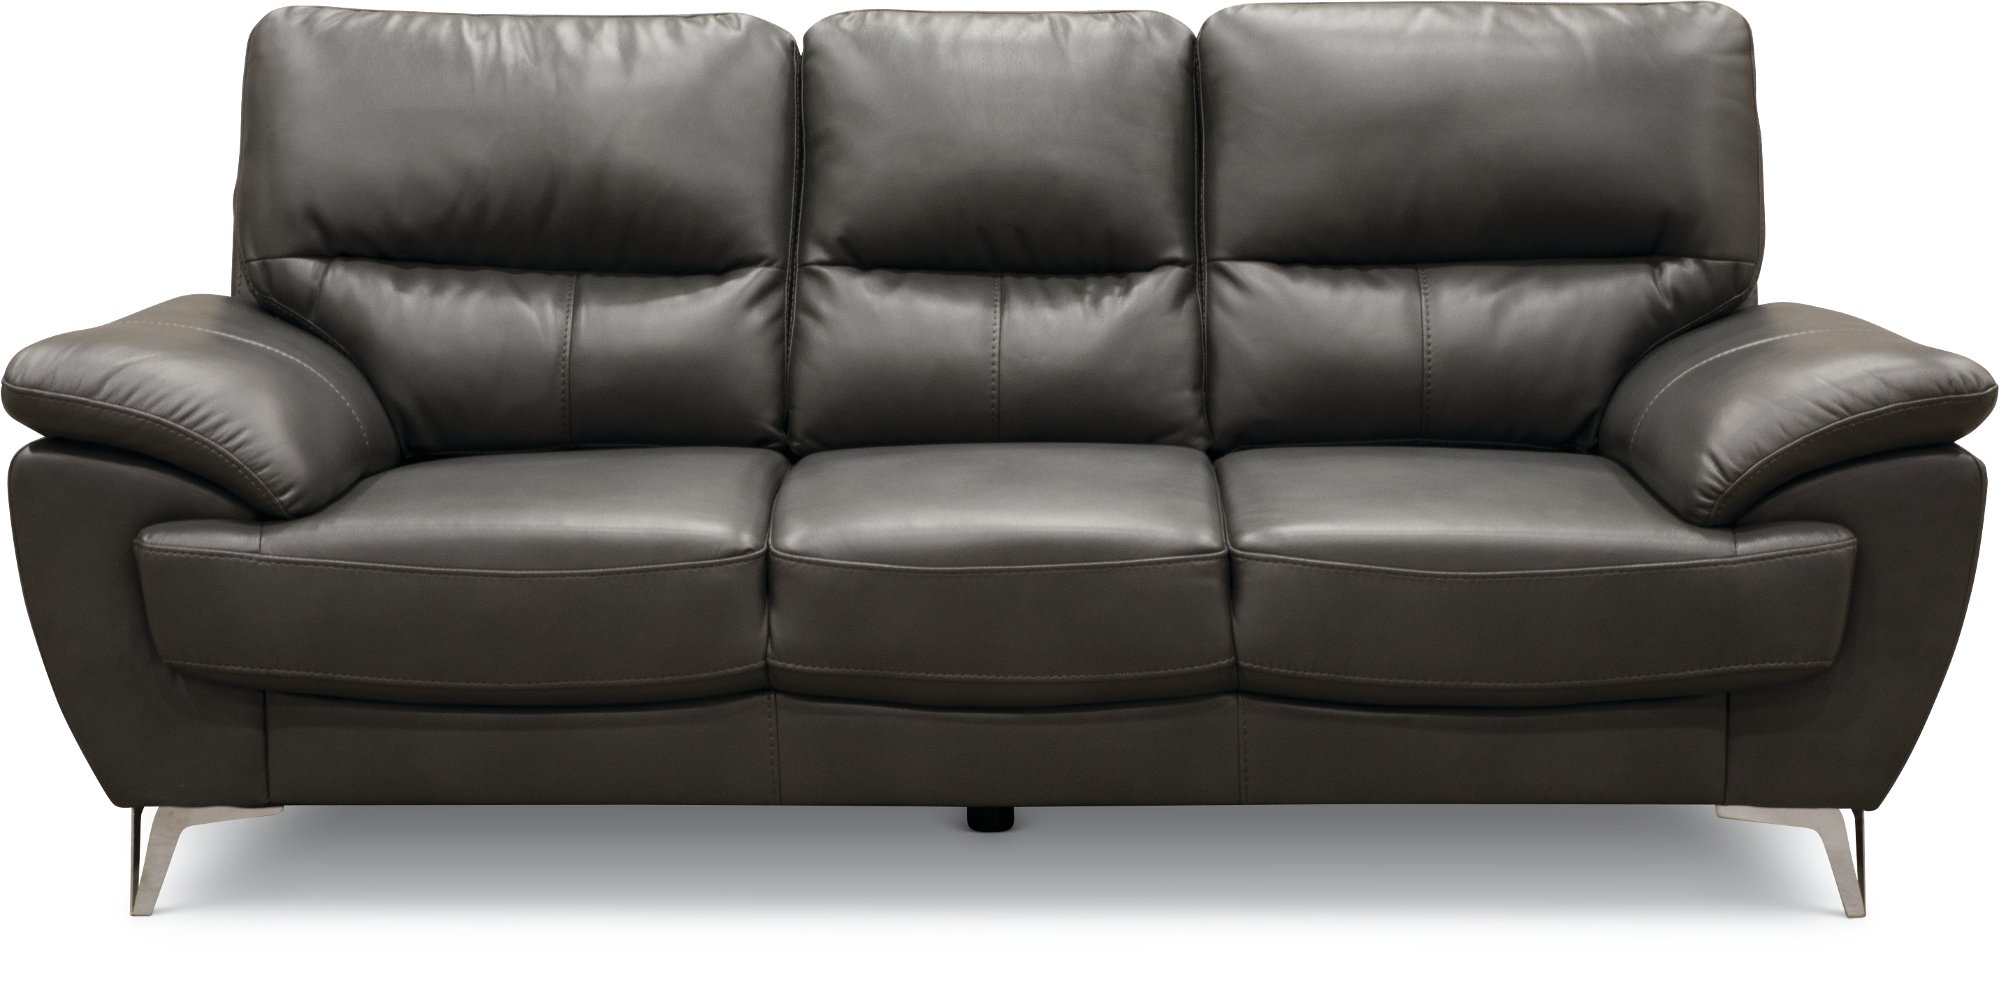 Contemporary Dark Gray Sofa